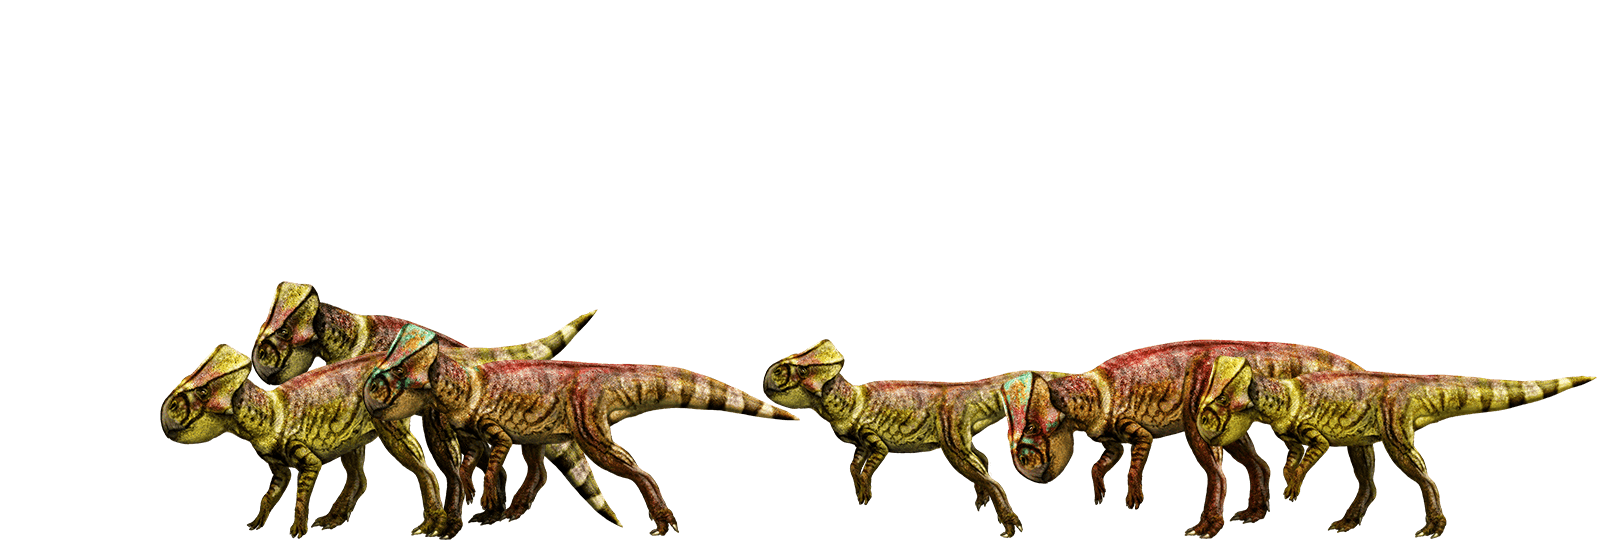 jurassic_world__microceratus_by_sonichedgehog2-d8jnxe4